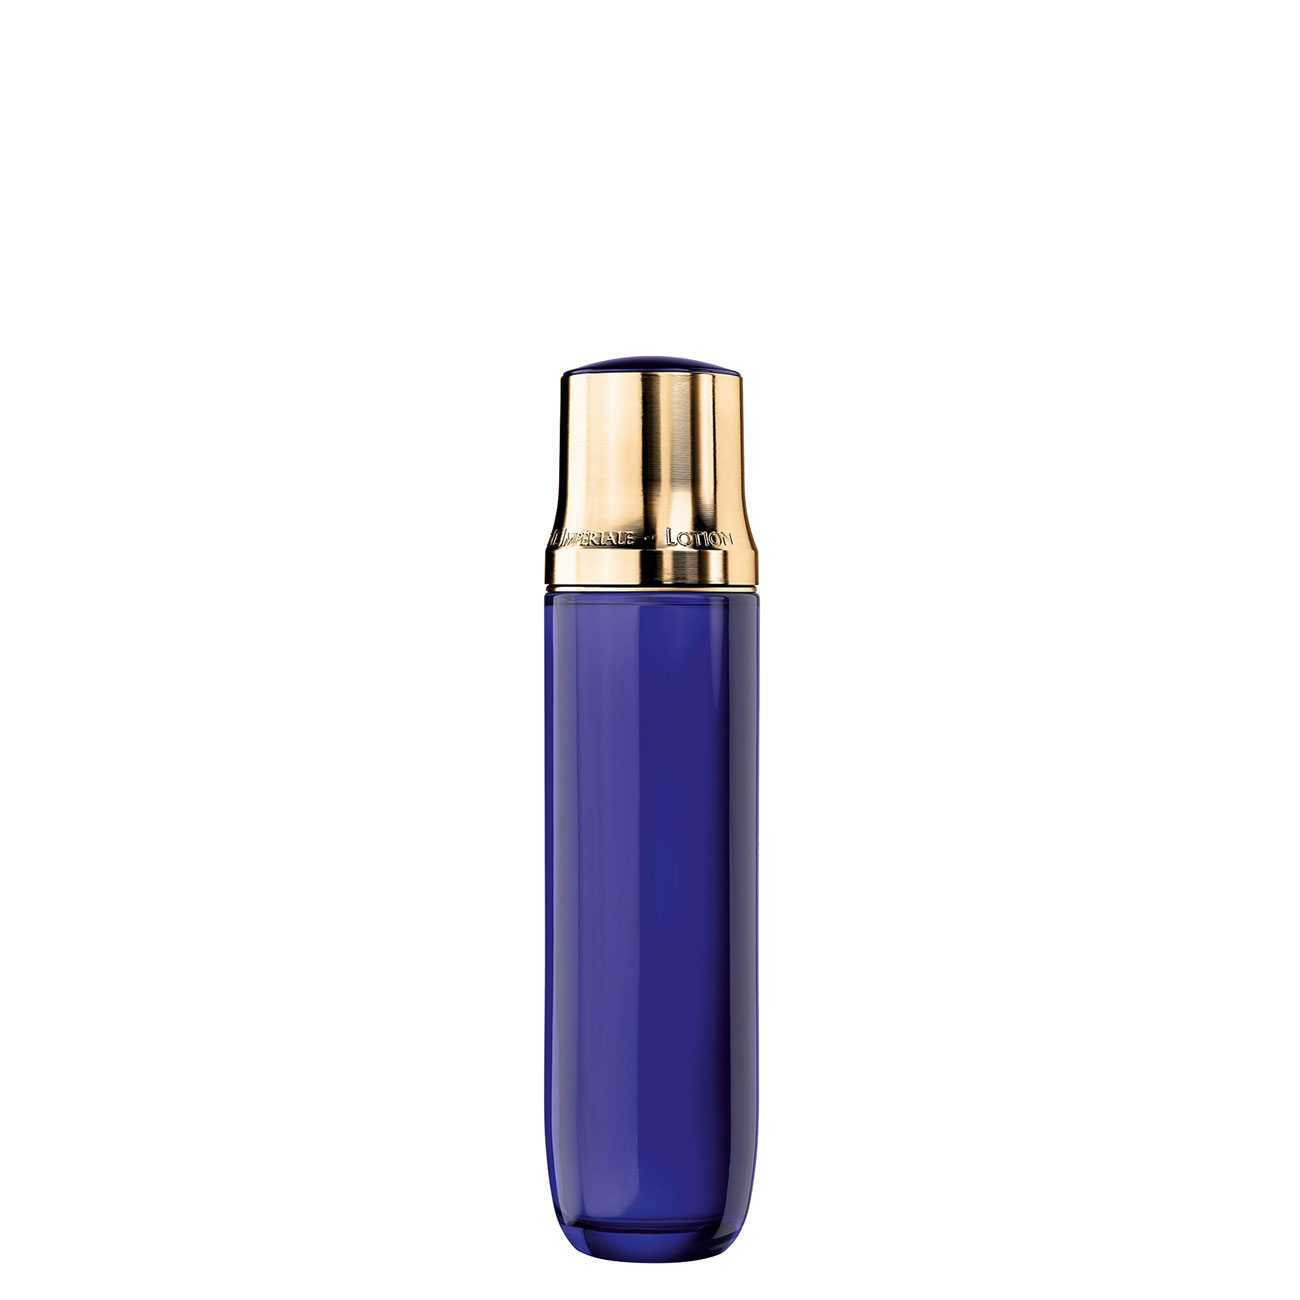 ORCHIDEE IMPERIALE TONER PUMP 125 ML imagine produs